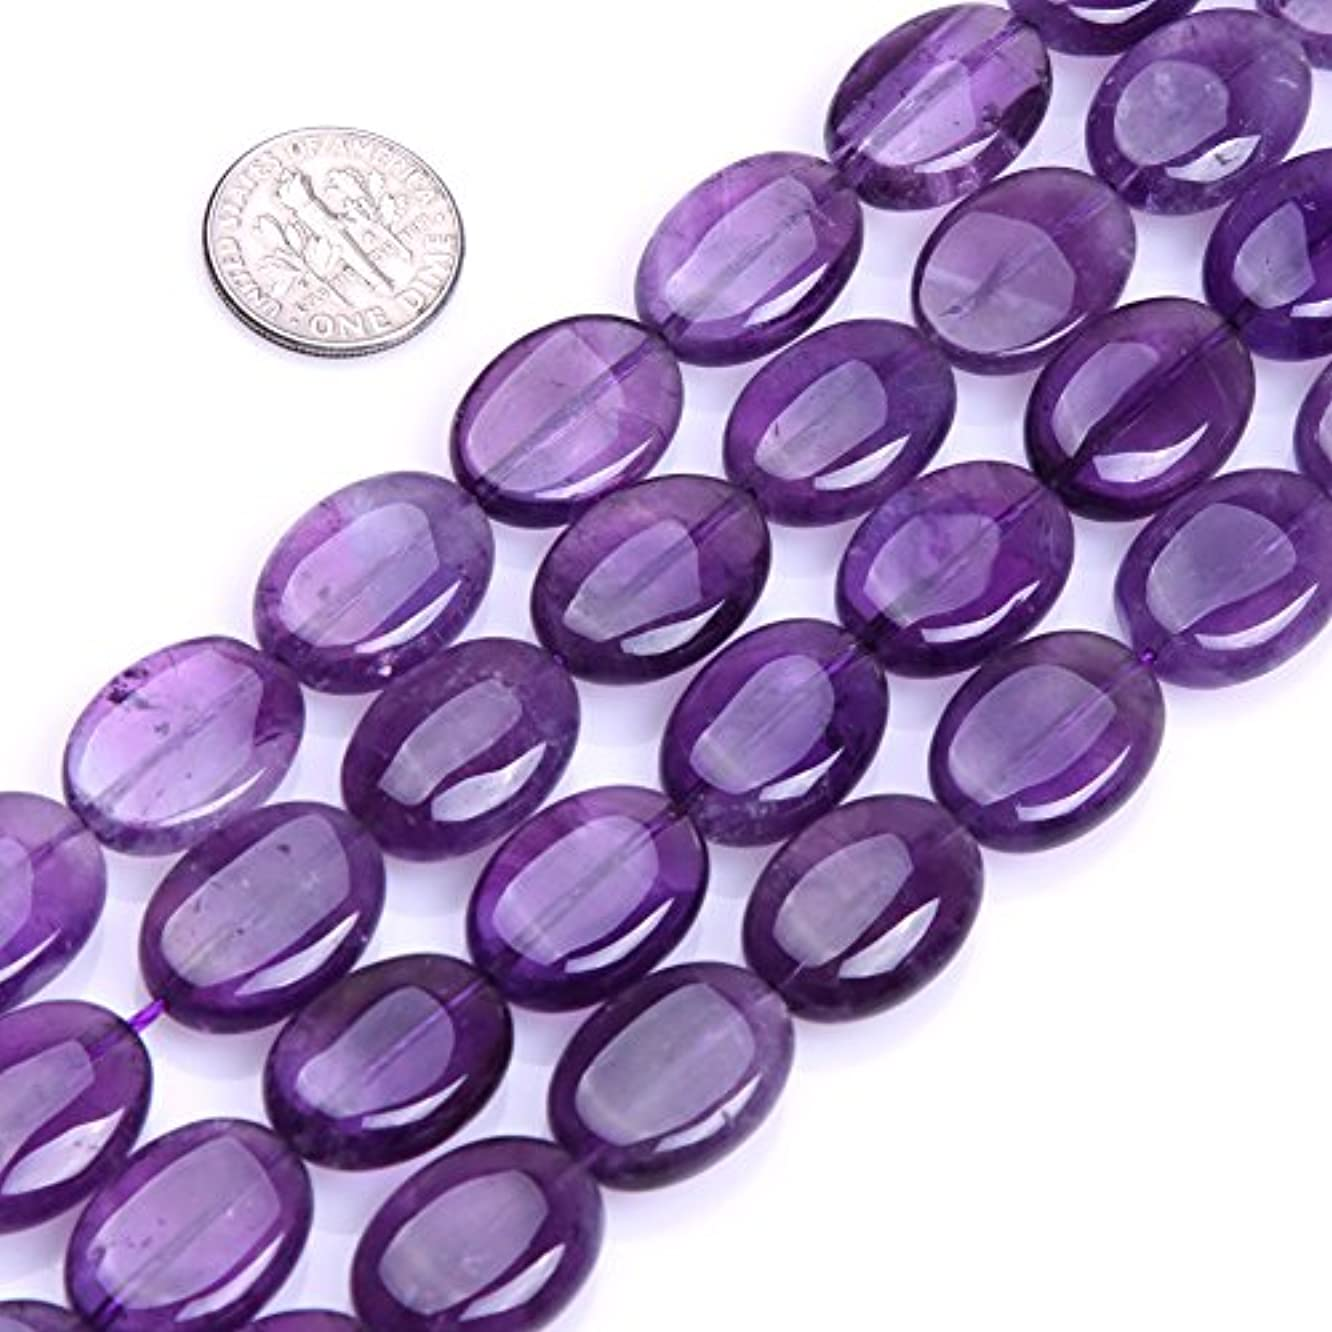 GEM-inside Amethyst Gemstone Loose Beads 13X18mm Oval Gemstone Light Color Energy Stone Power Beads For Jewelry Making 15